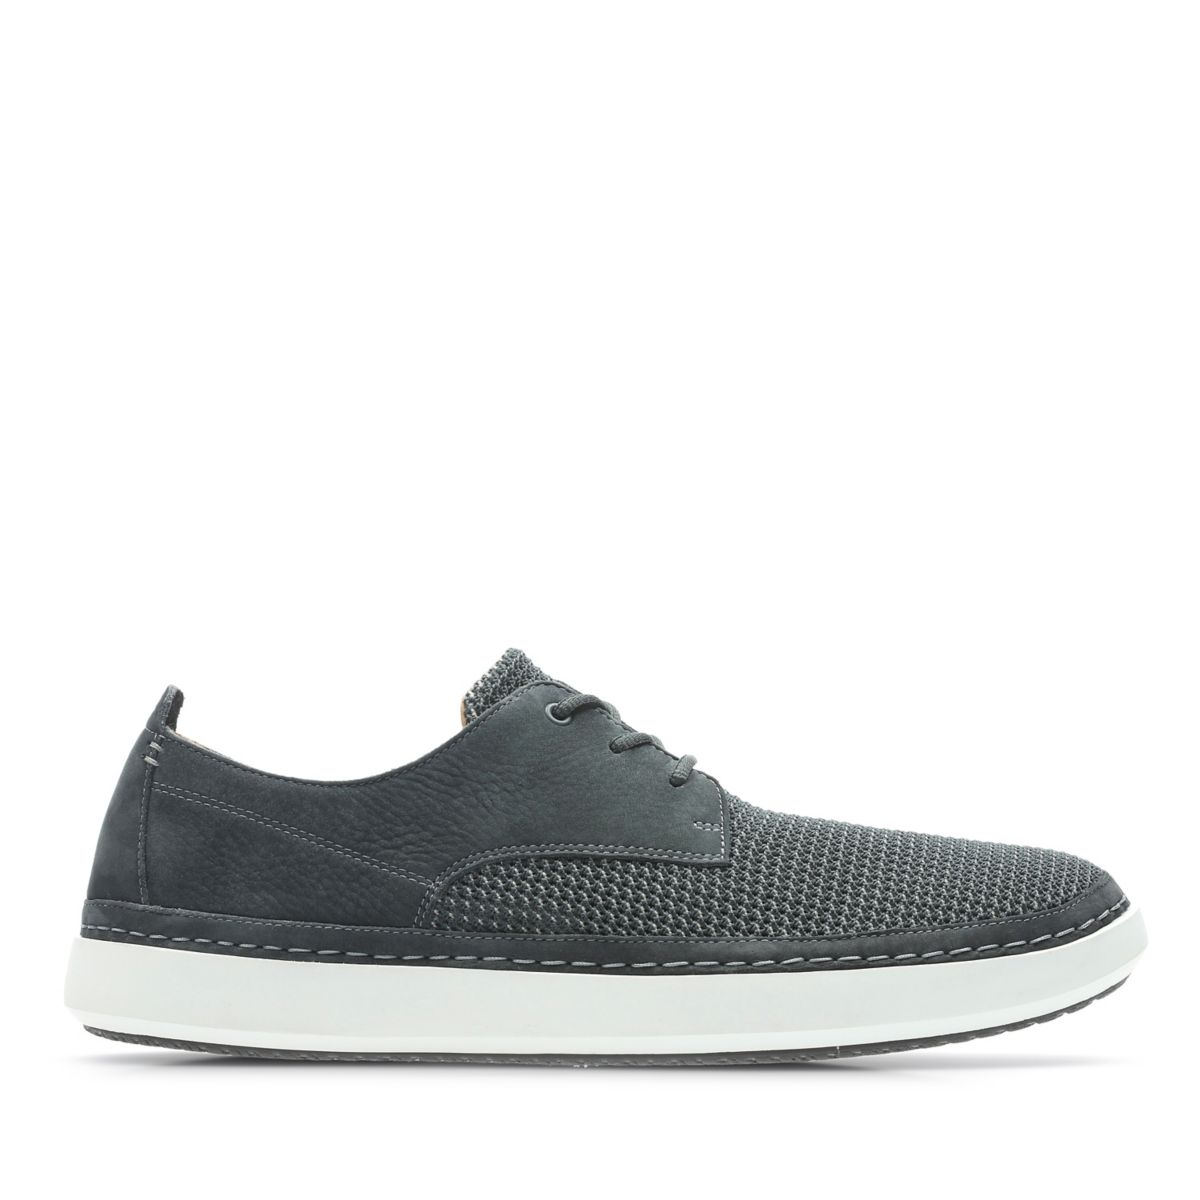 KOMUTER SPARK - Casual lace-ups - dark grey